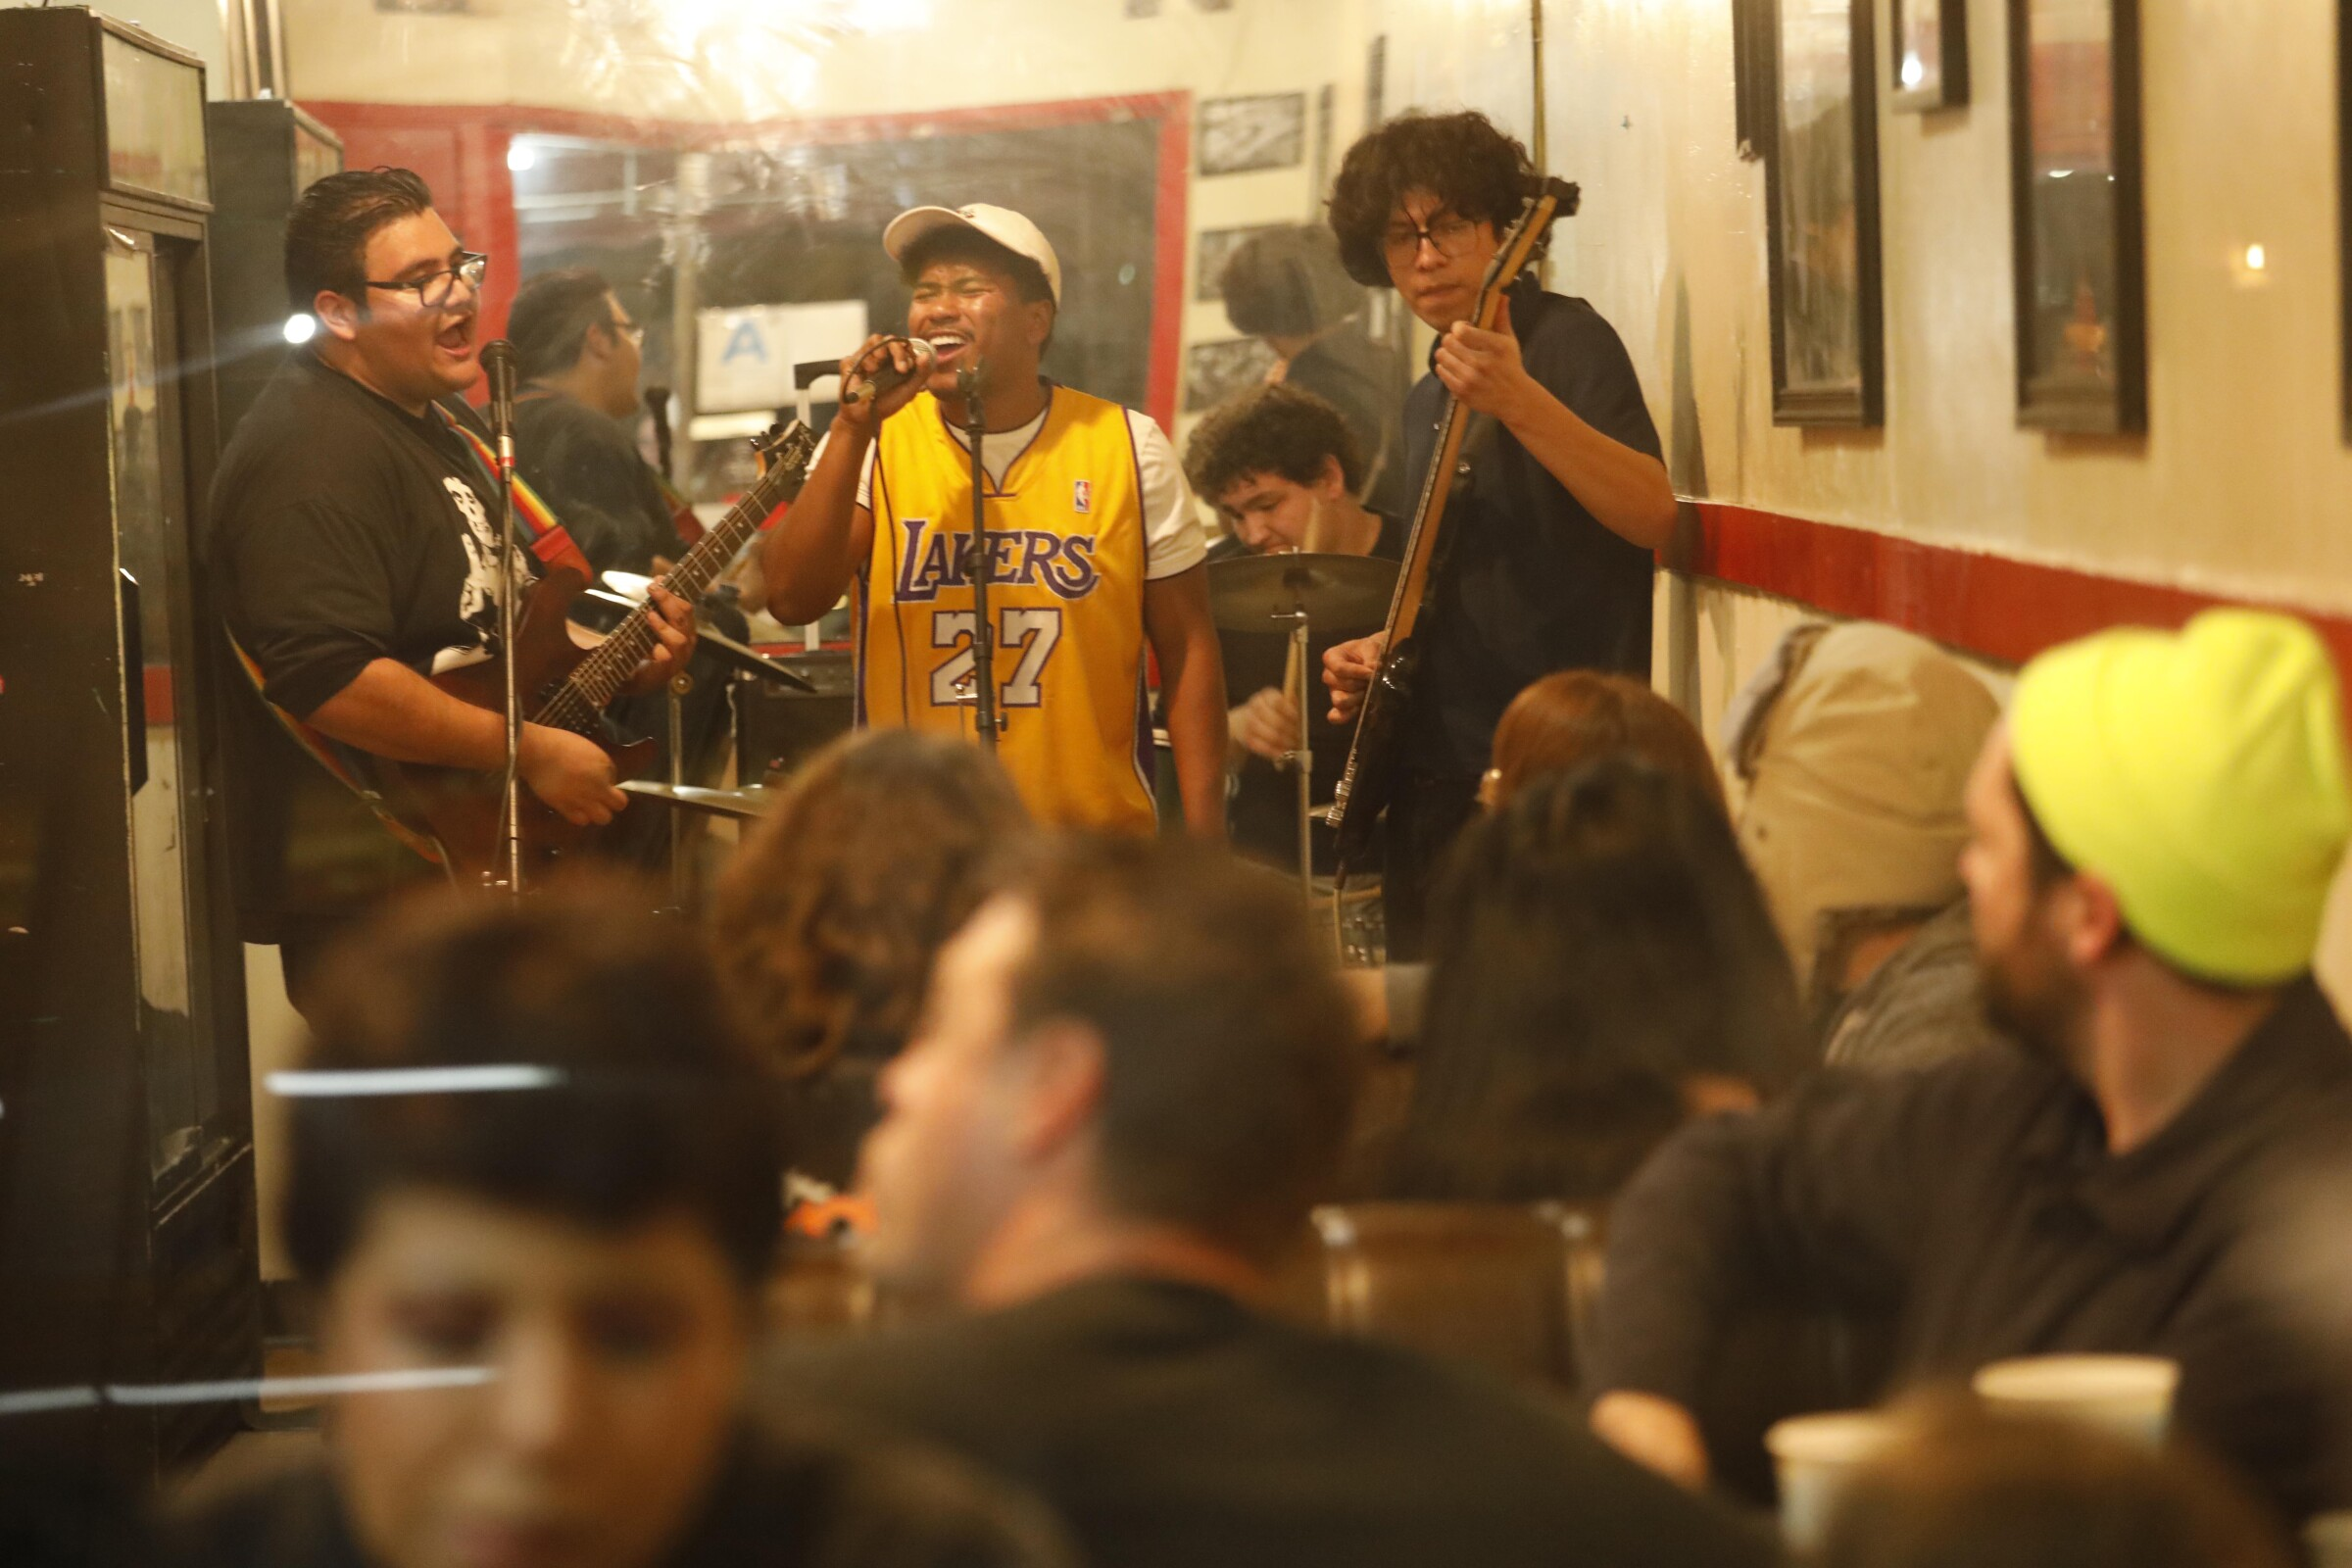 No Refunds performs at Alexander's Hub Burritos in Compton